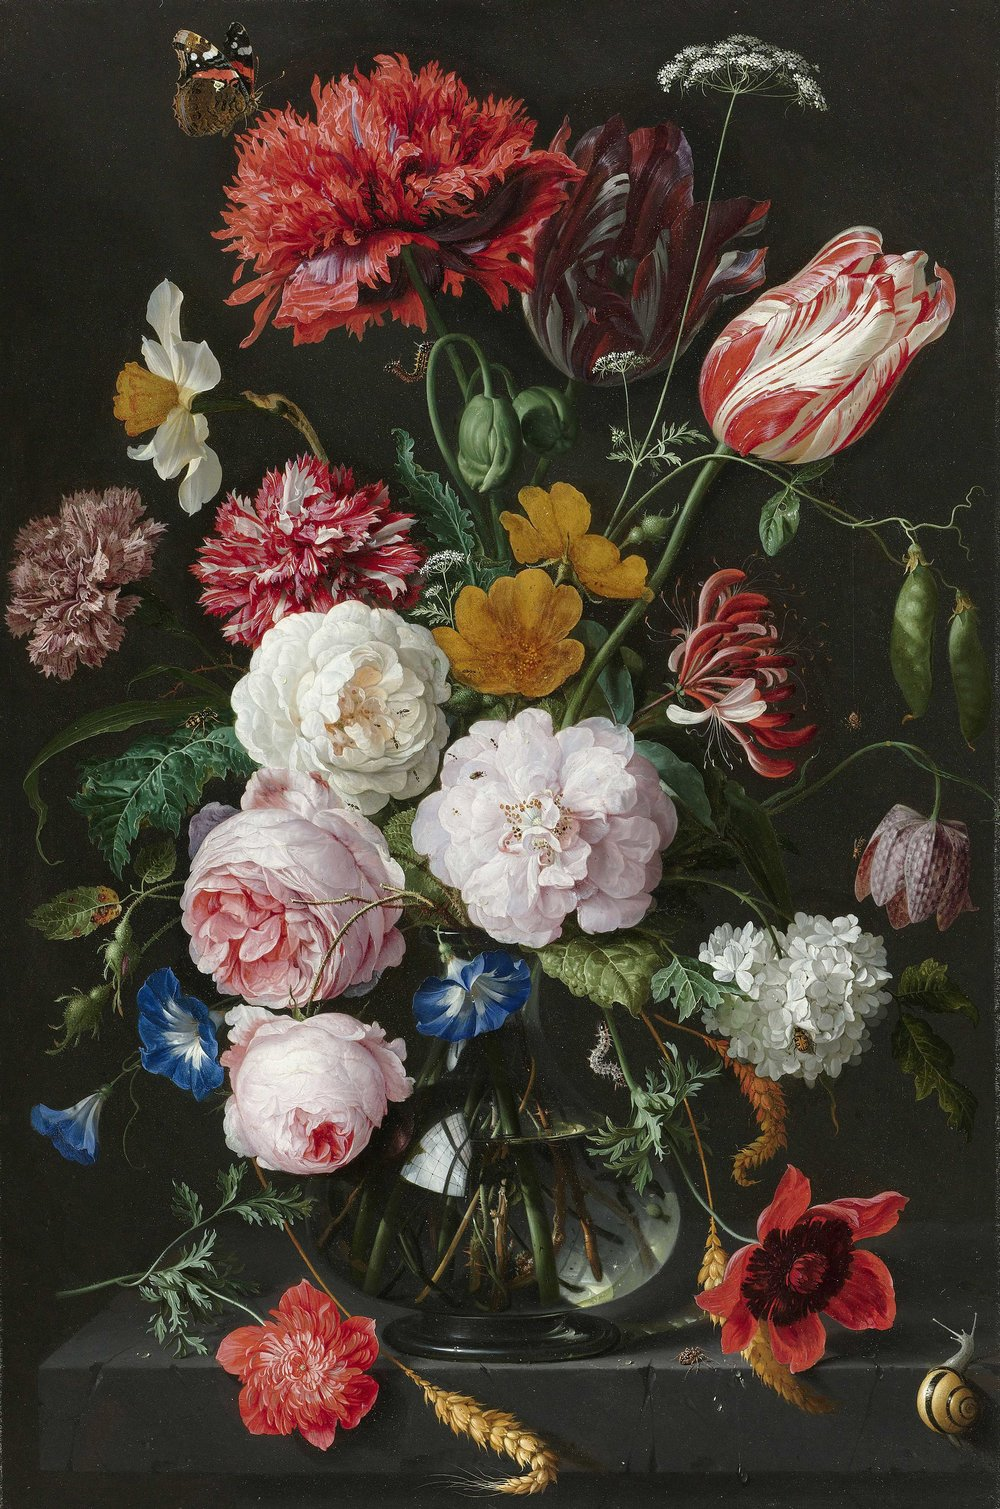 Still Life with Flowers in a Glass Vase - Jan Davidsz-de-Heem. Oil on Copper  Date: 1650 - 1683